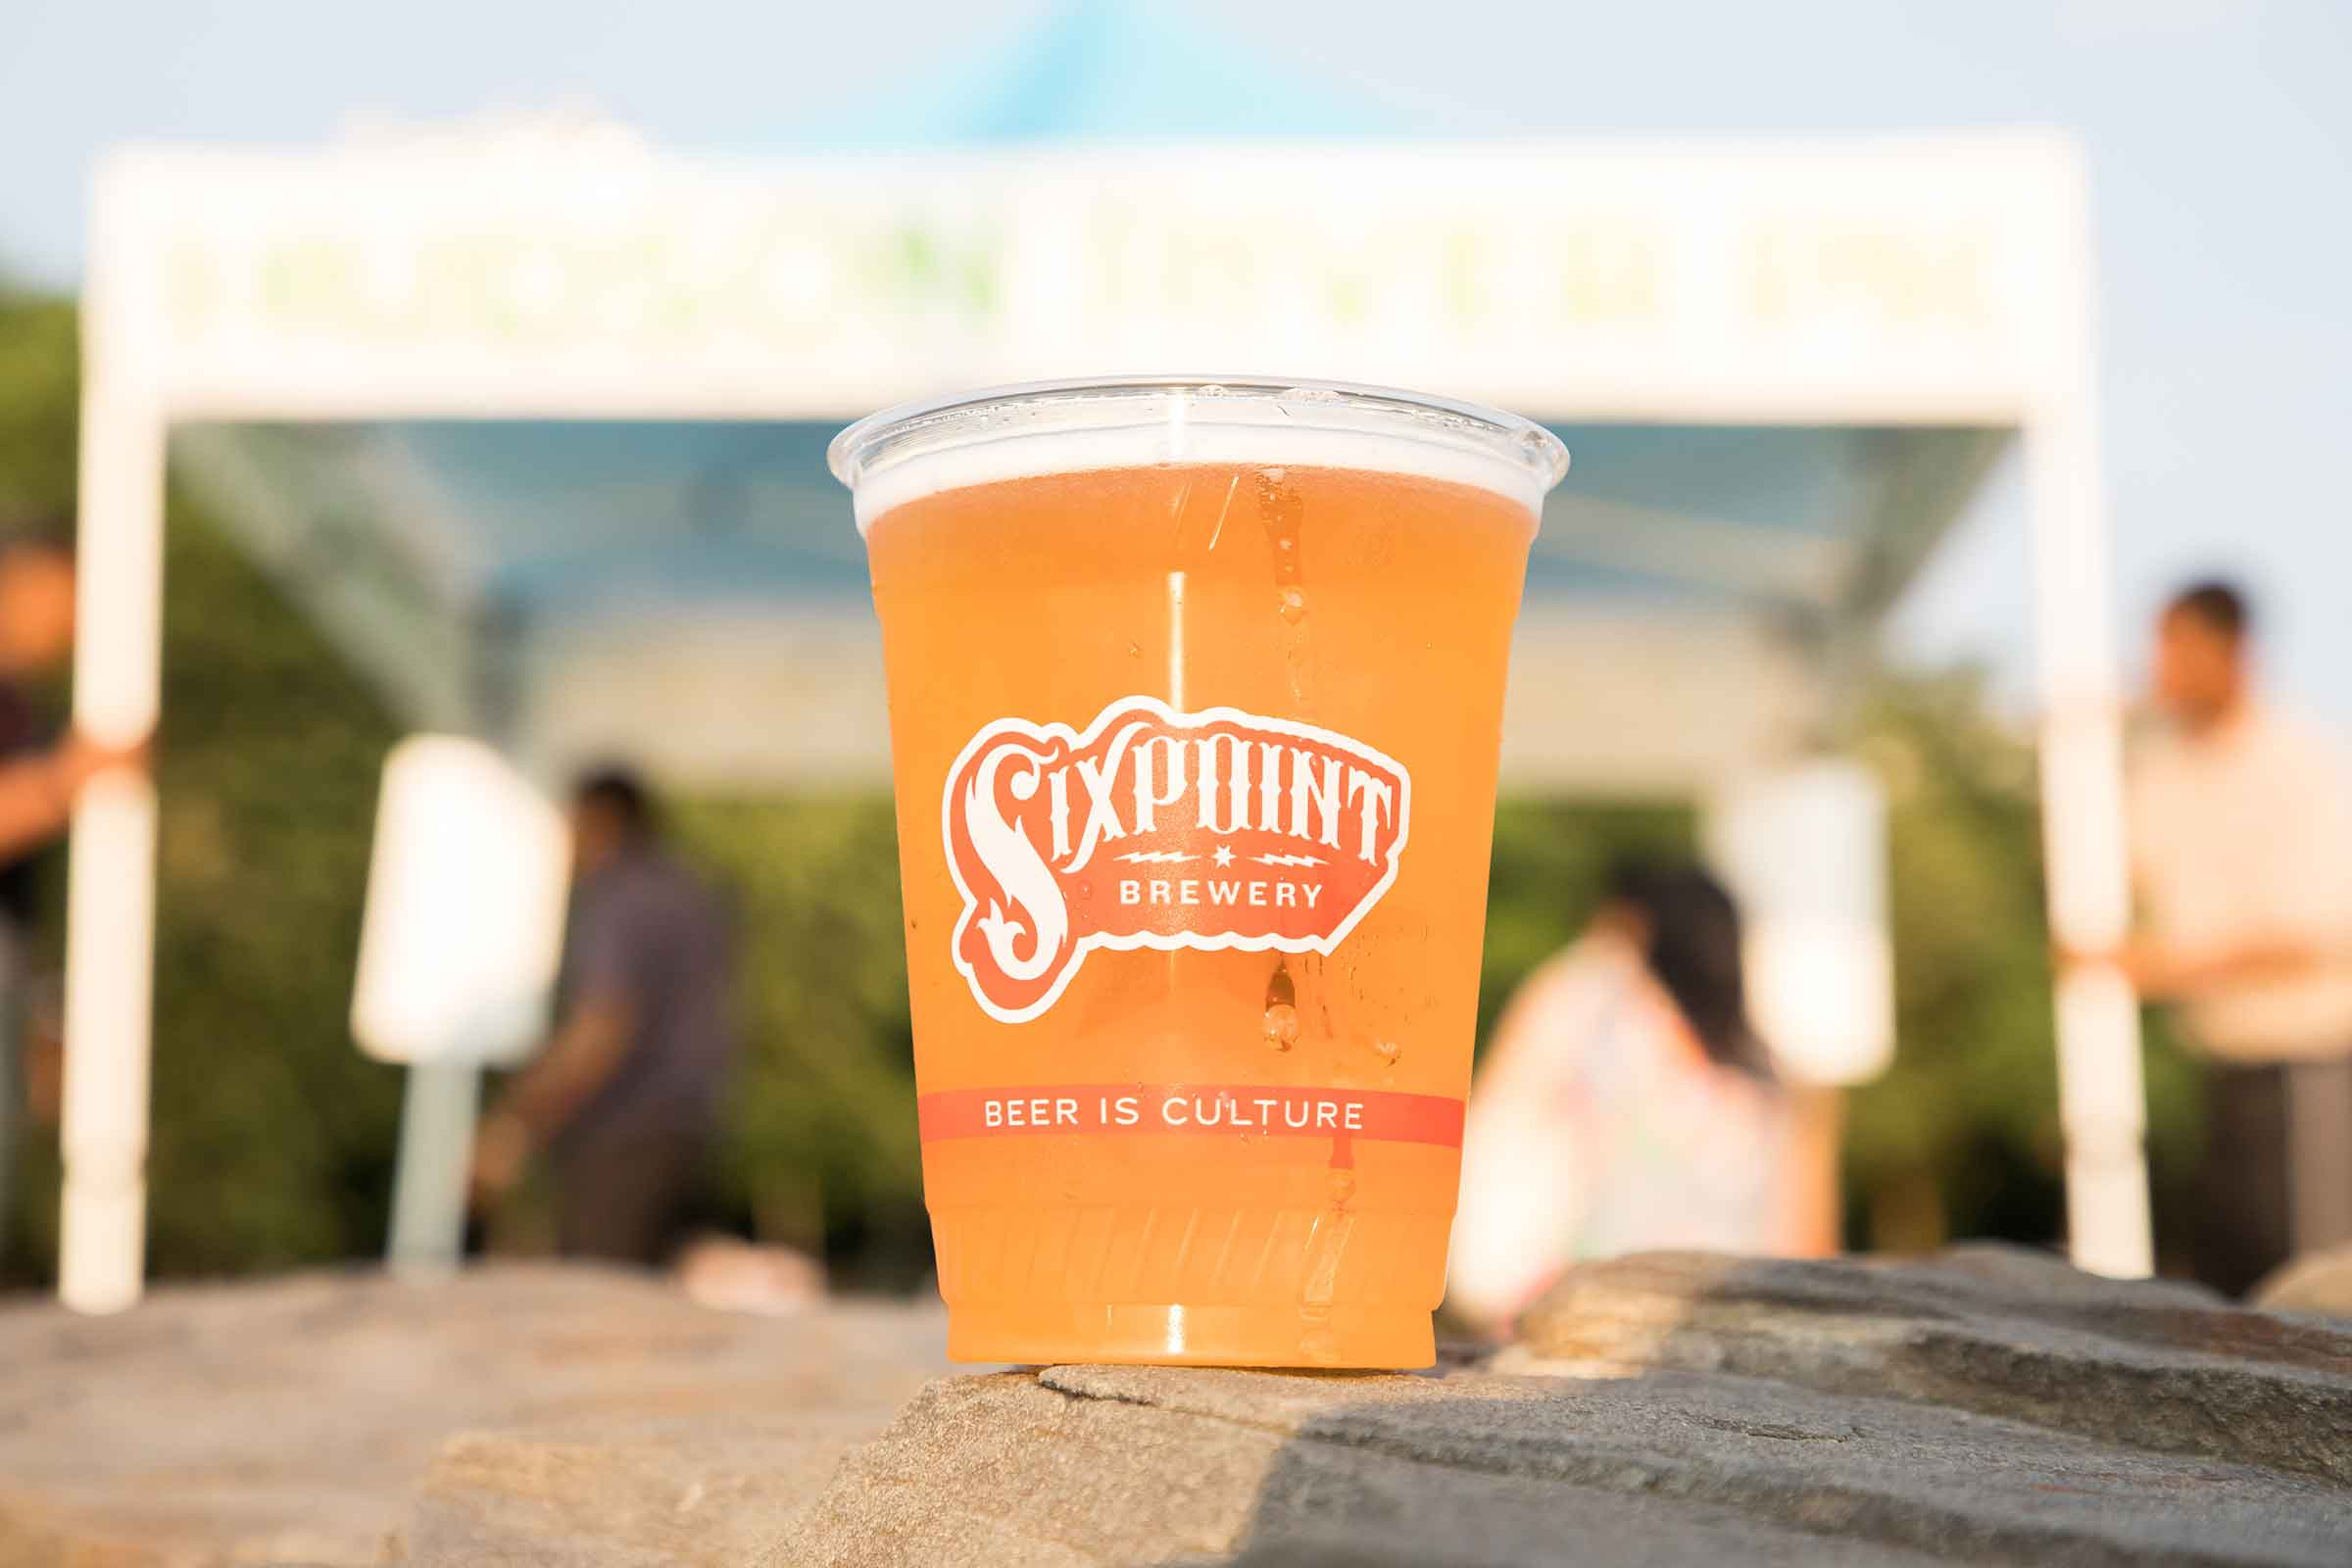 Sixpoint provides beer and other beverages as a sponsor for Hudson River Park